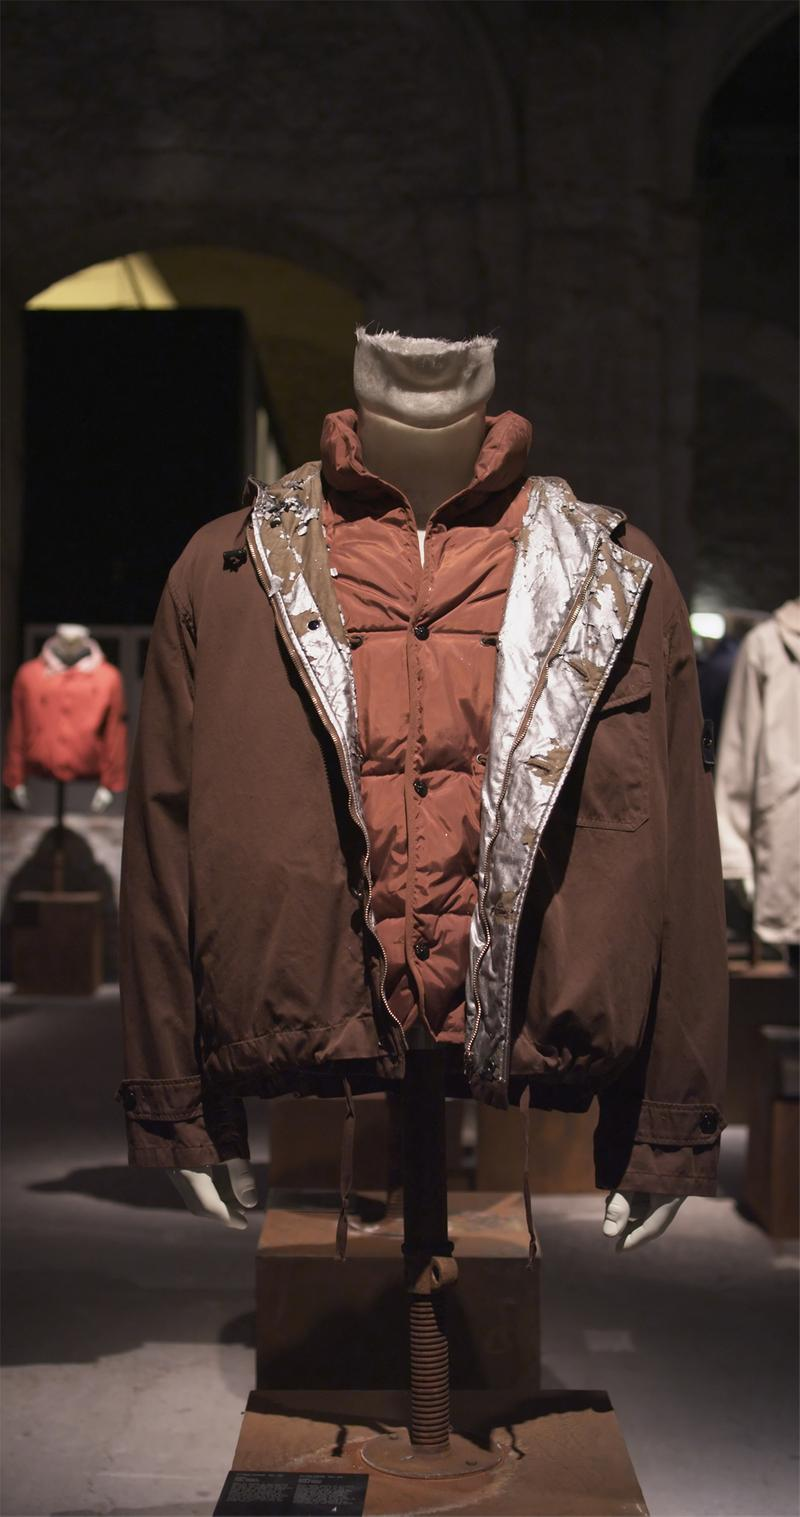 Brown zippered jacket with silver lining over buttoned dark red puffer jacket displayed on mannequin bust